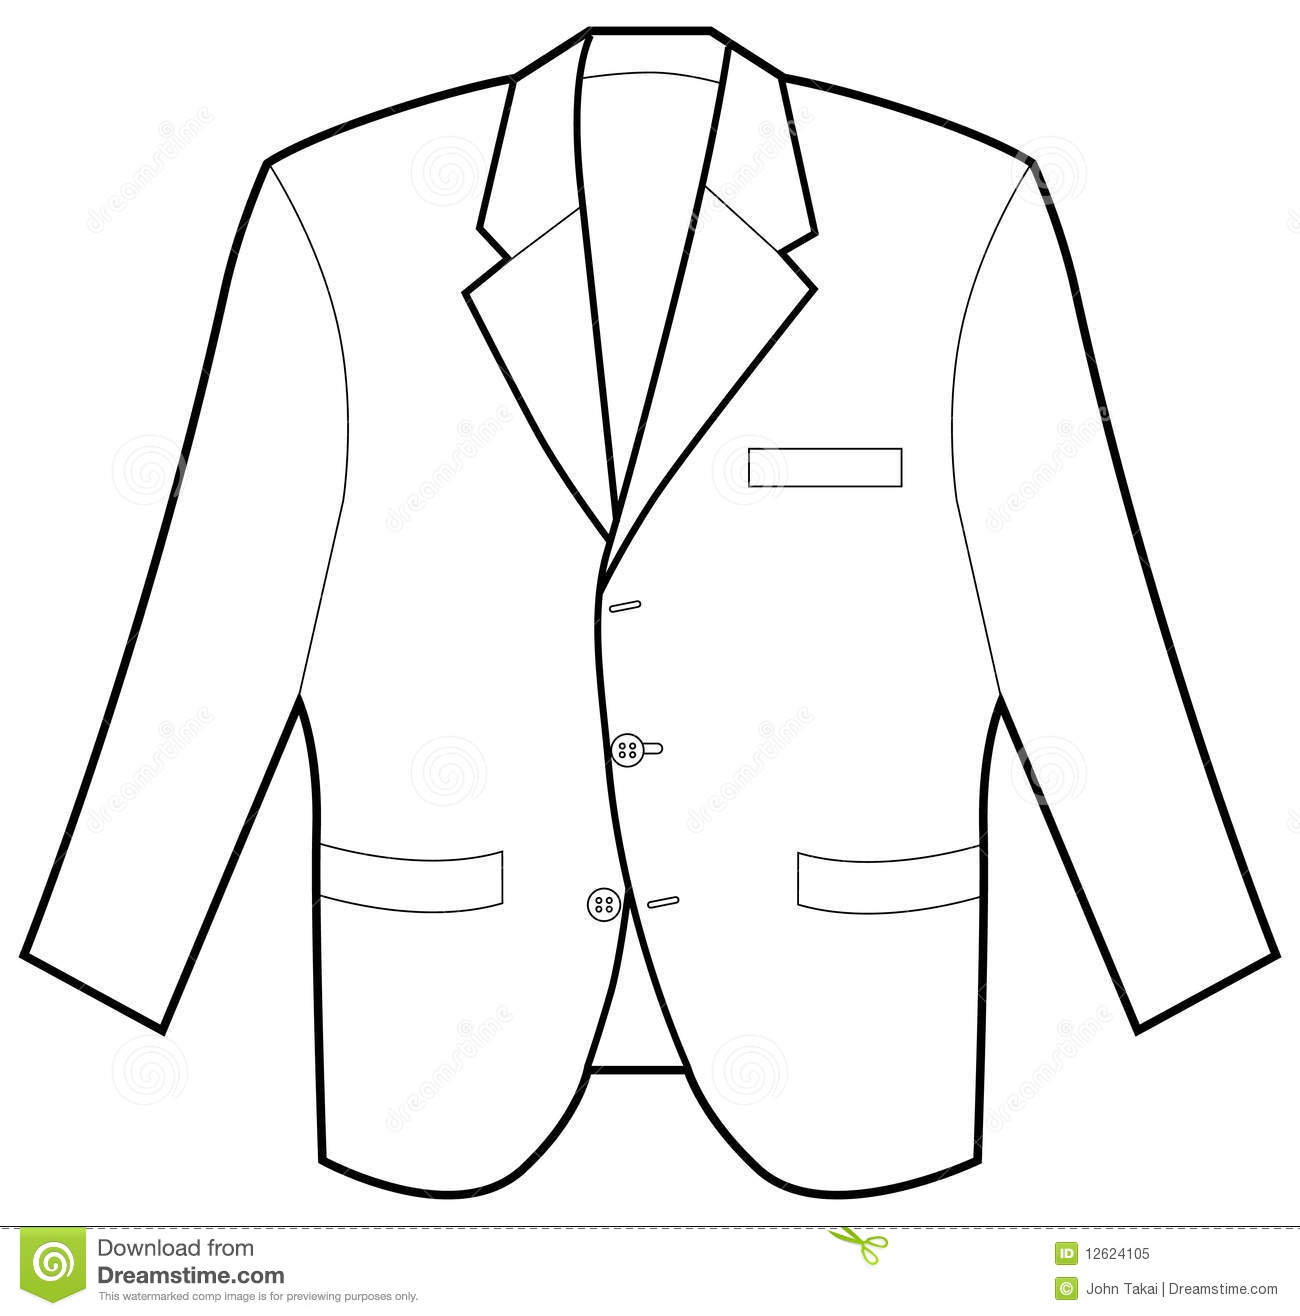 Outline Images Of Coat